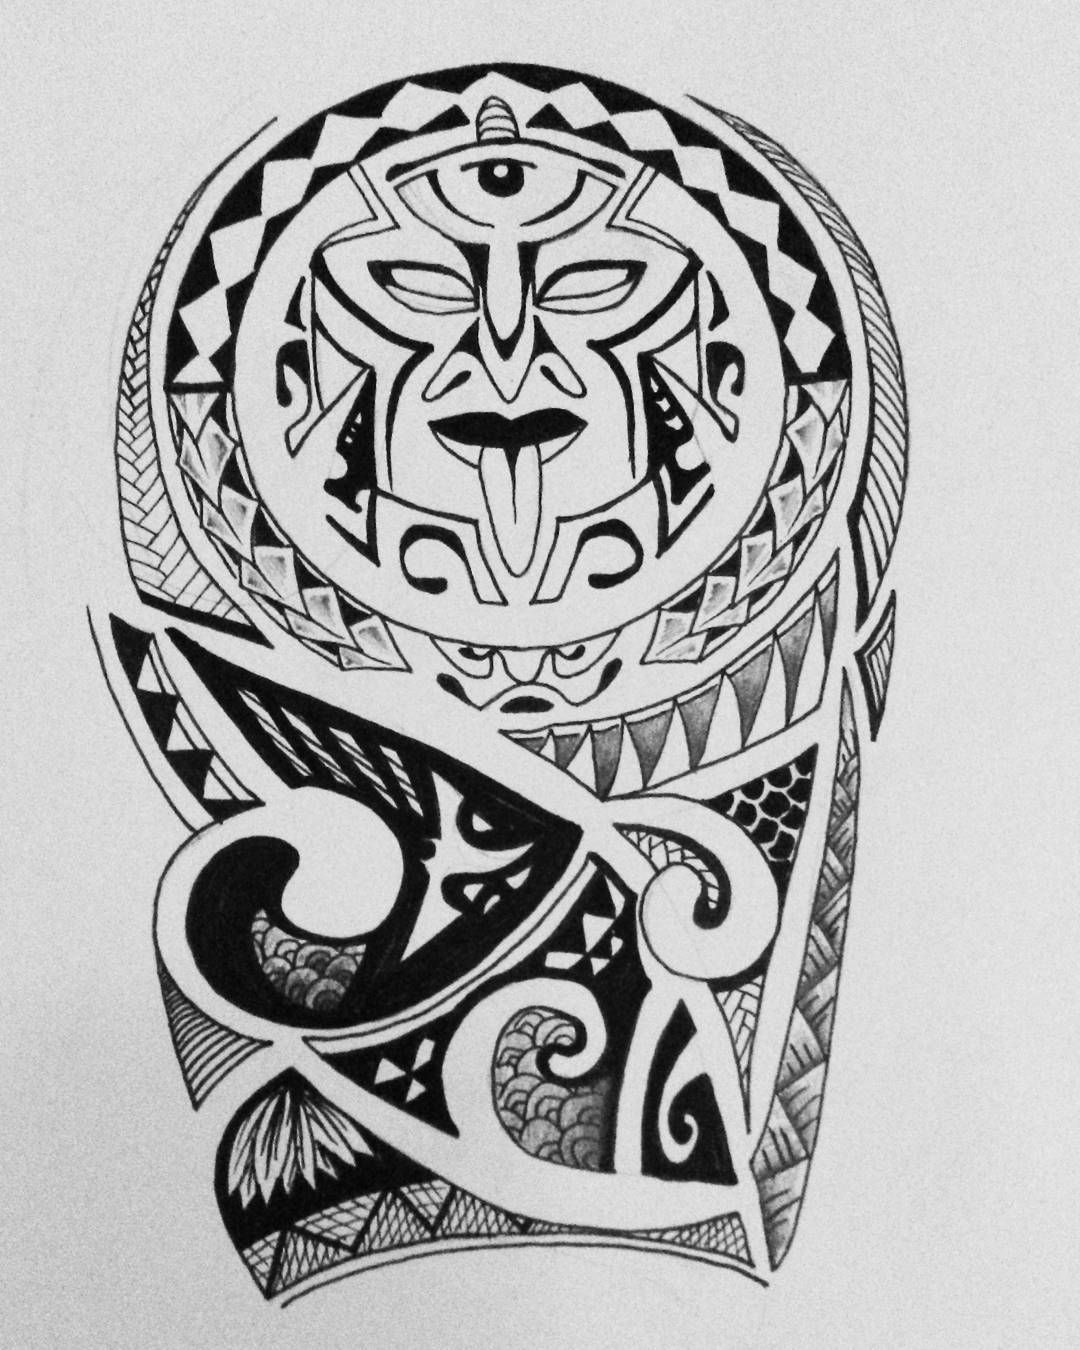 55 Best Maori Tattoo Designs Meanings: #tattoodesign #tattoo #design #maori #tribal #black